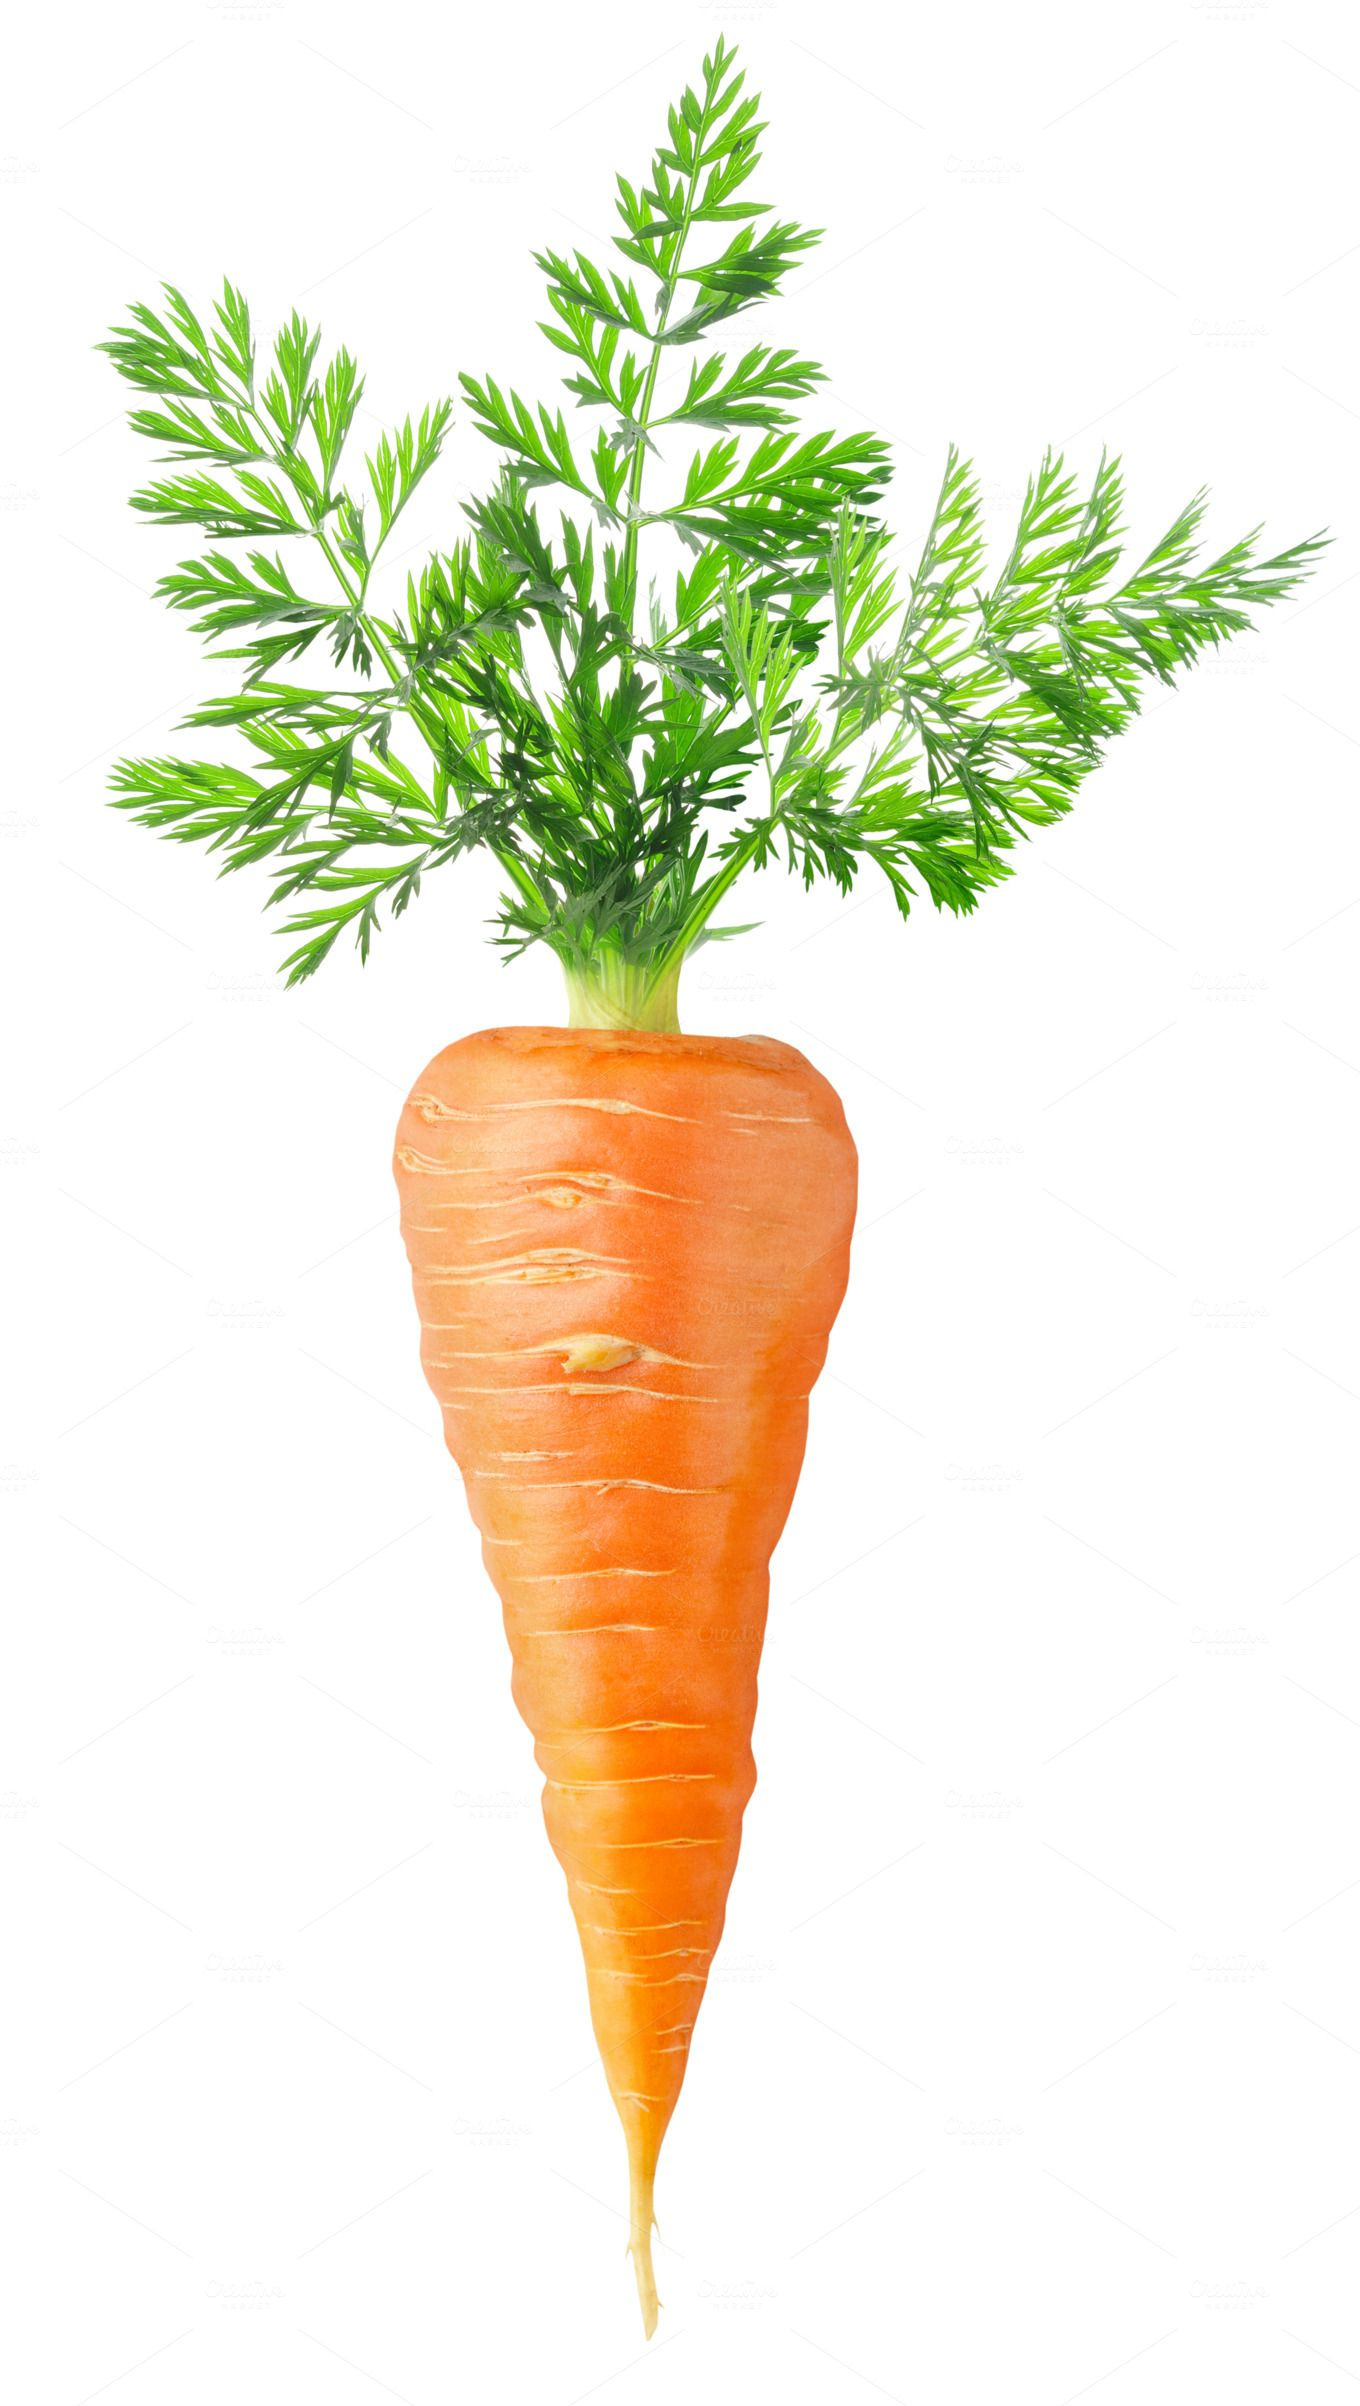 Carrot On Transparent Background By Fruits Veggies On